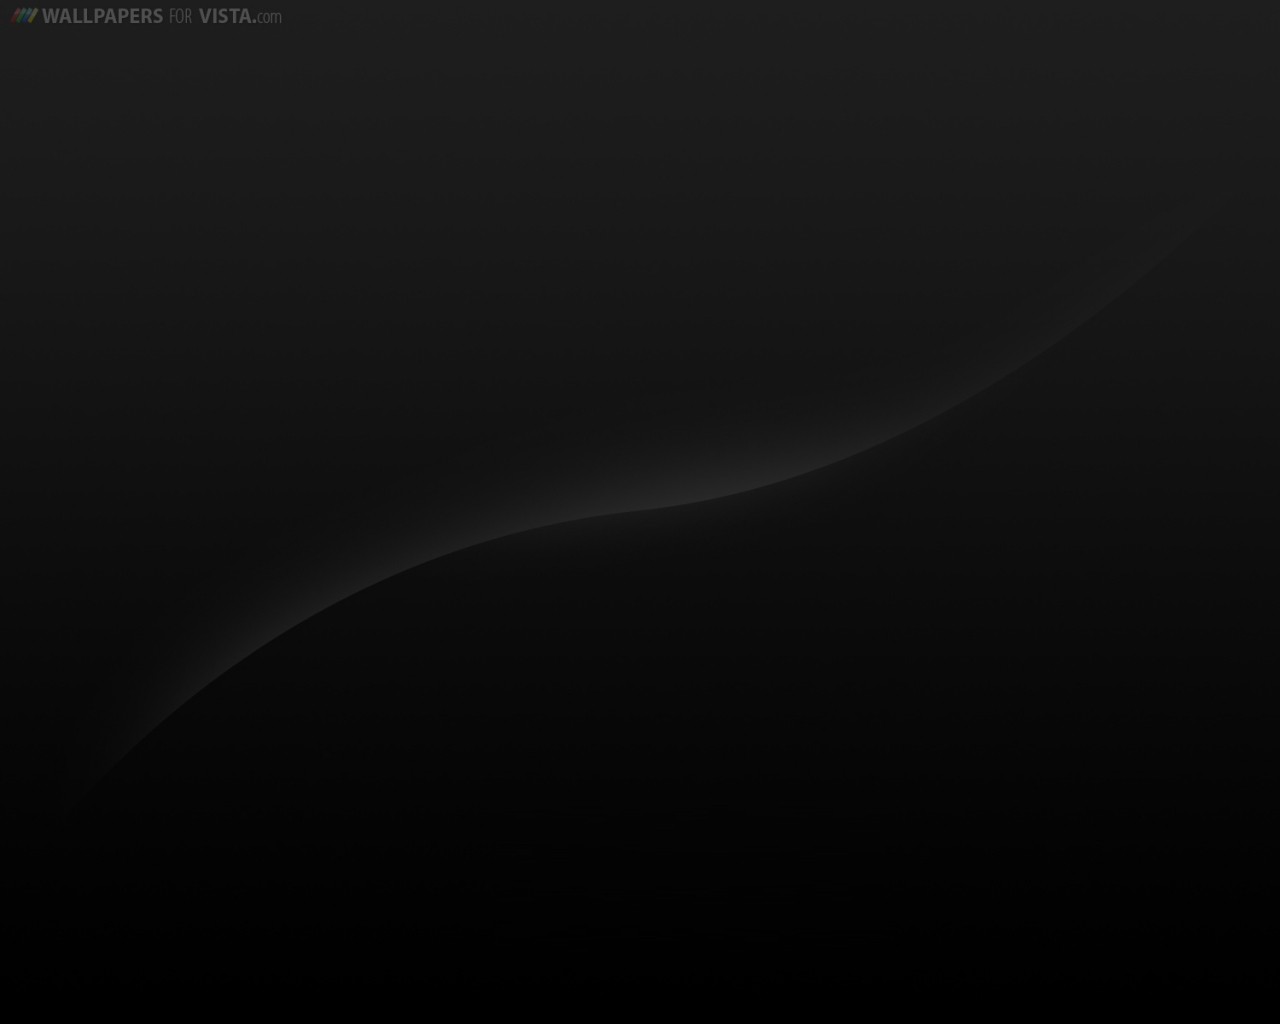 wallpaper with black background 60 background